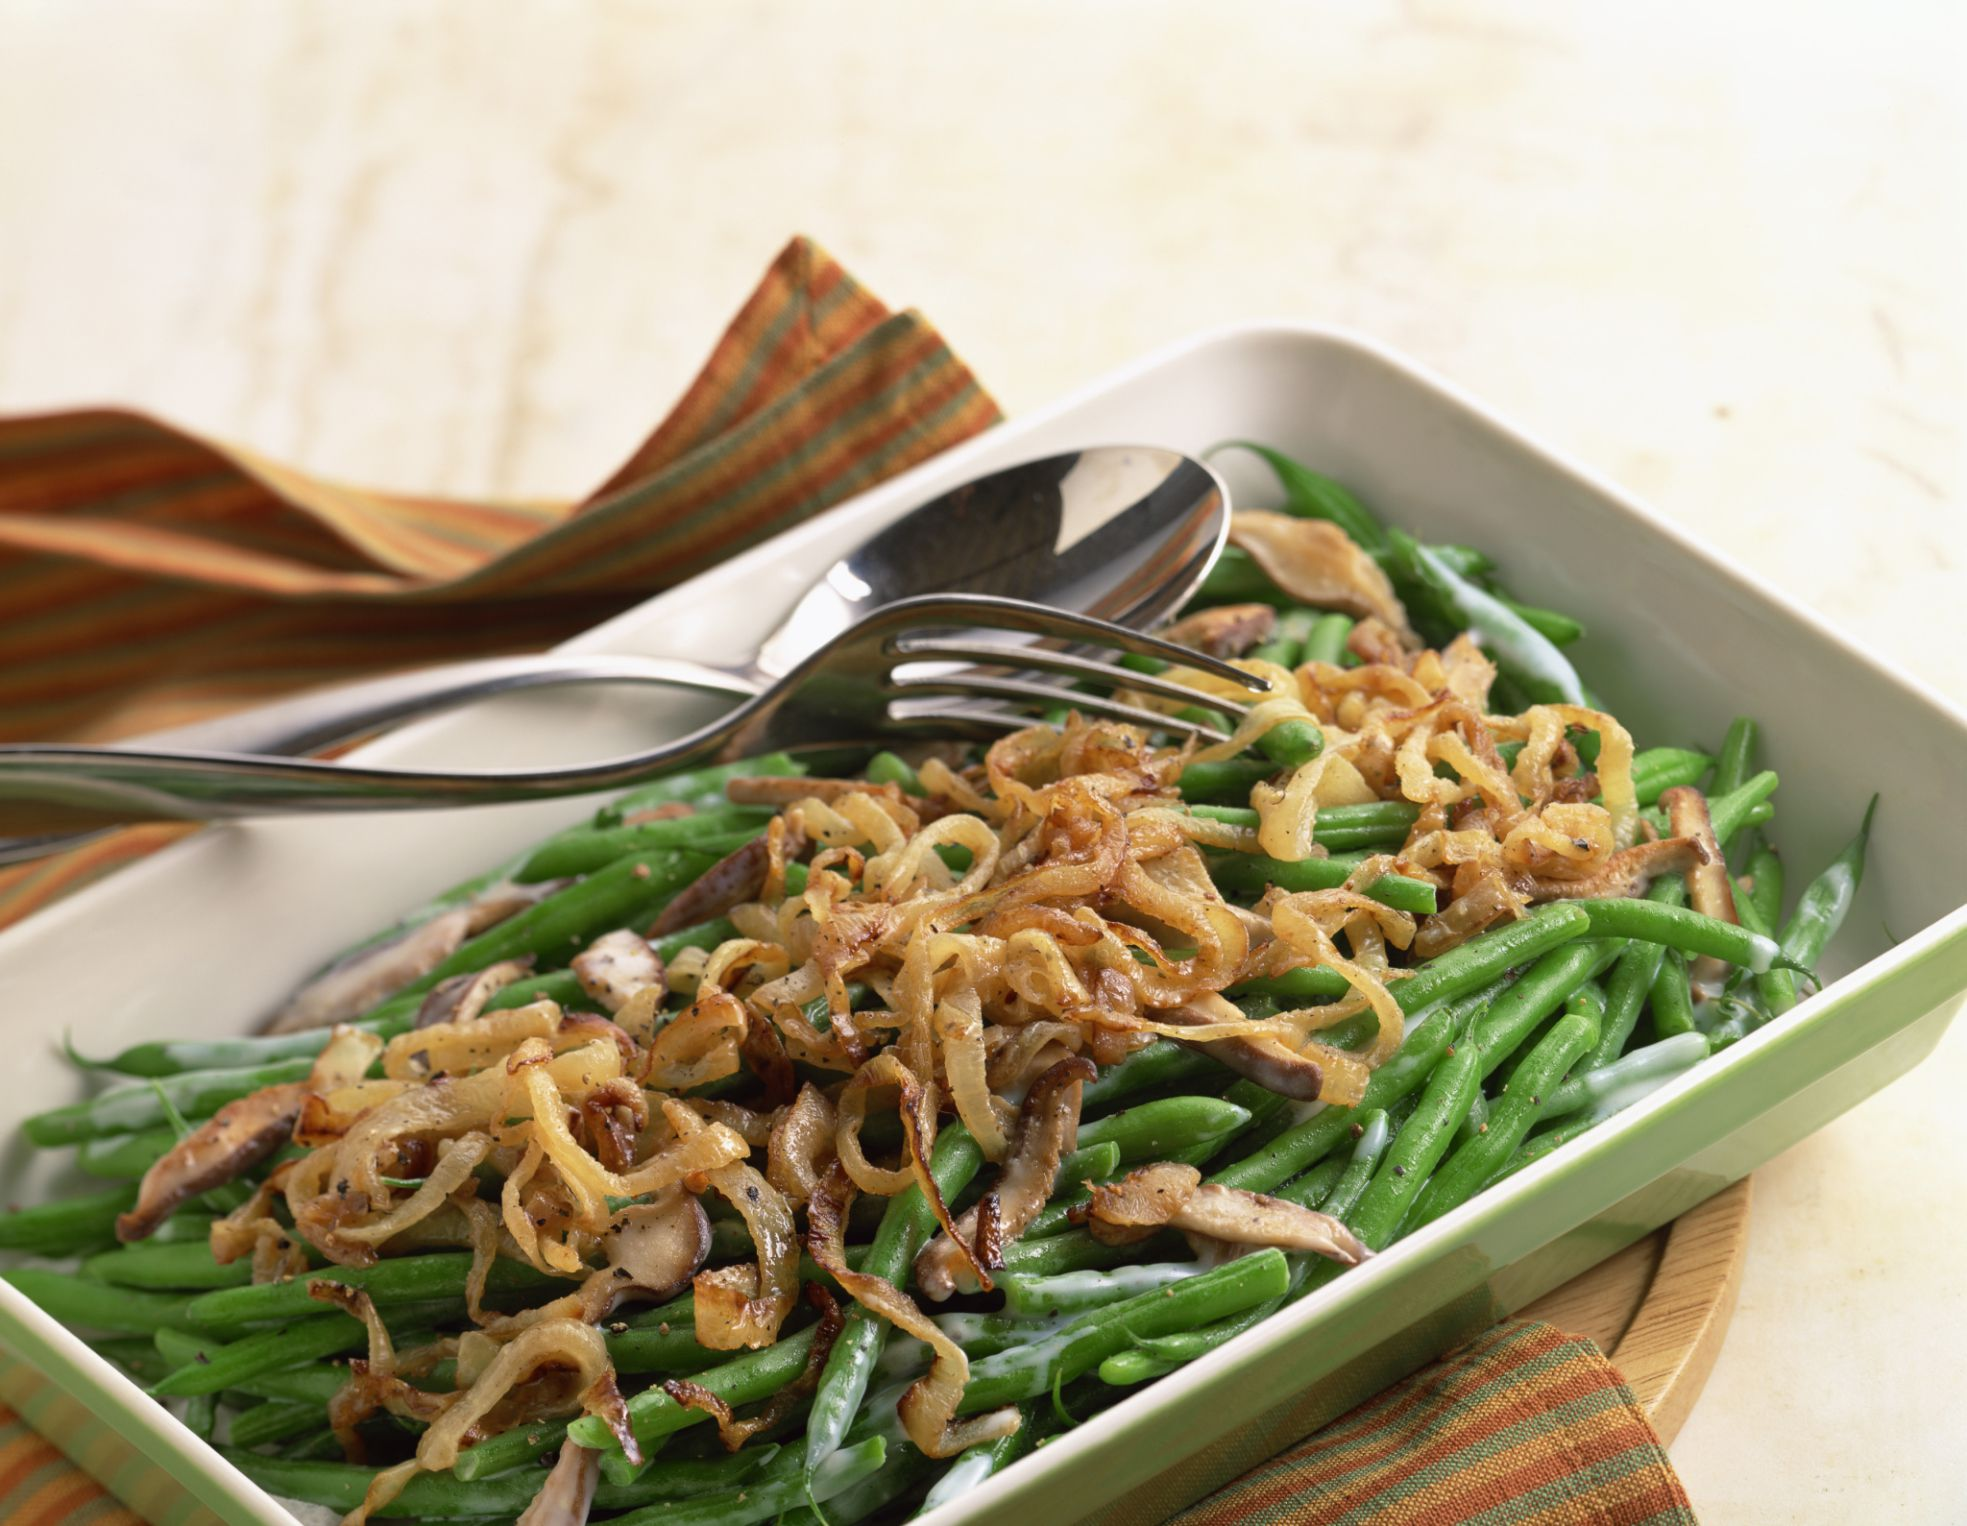 How To Reduce Calories In Green Bean Casserole